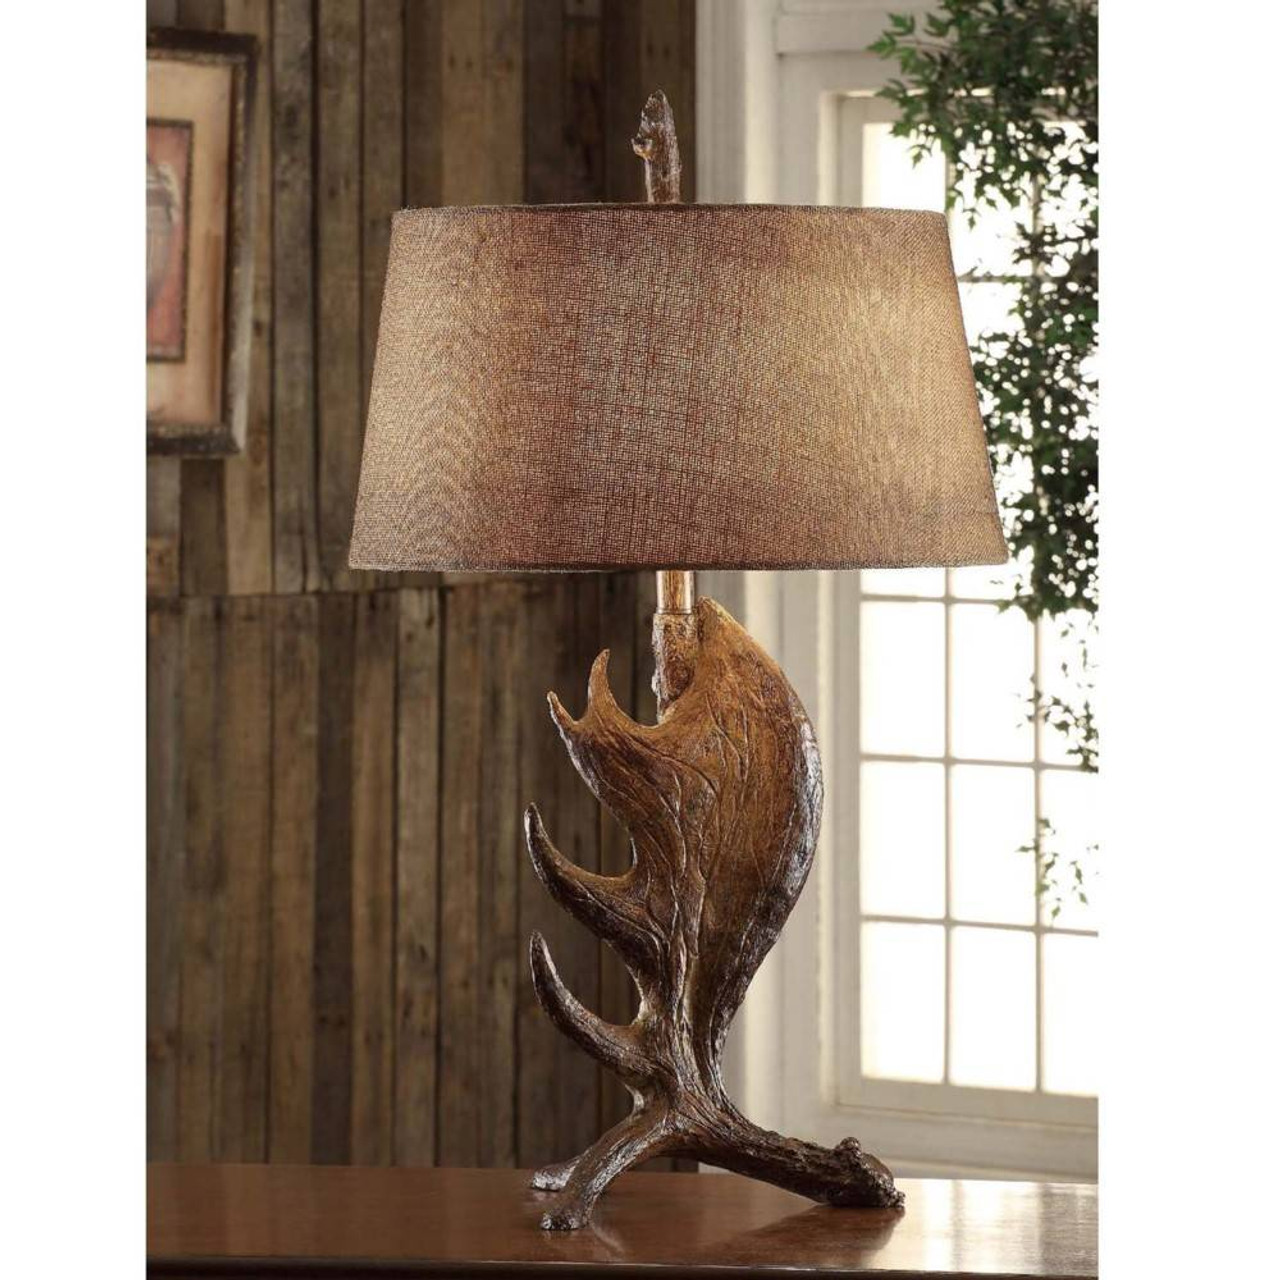 30 moose shed table lamp american expedition moose shed table lamp aloadofball Choice Image